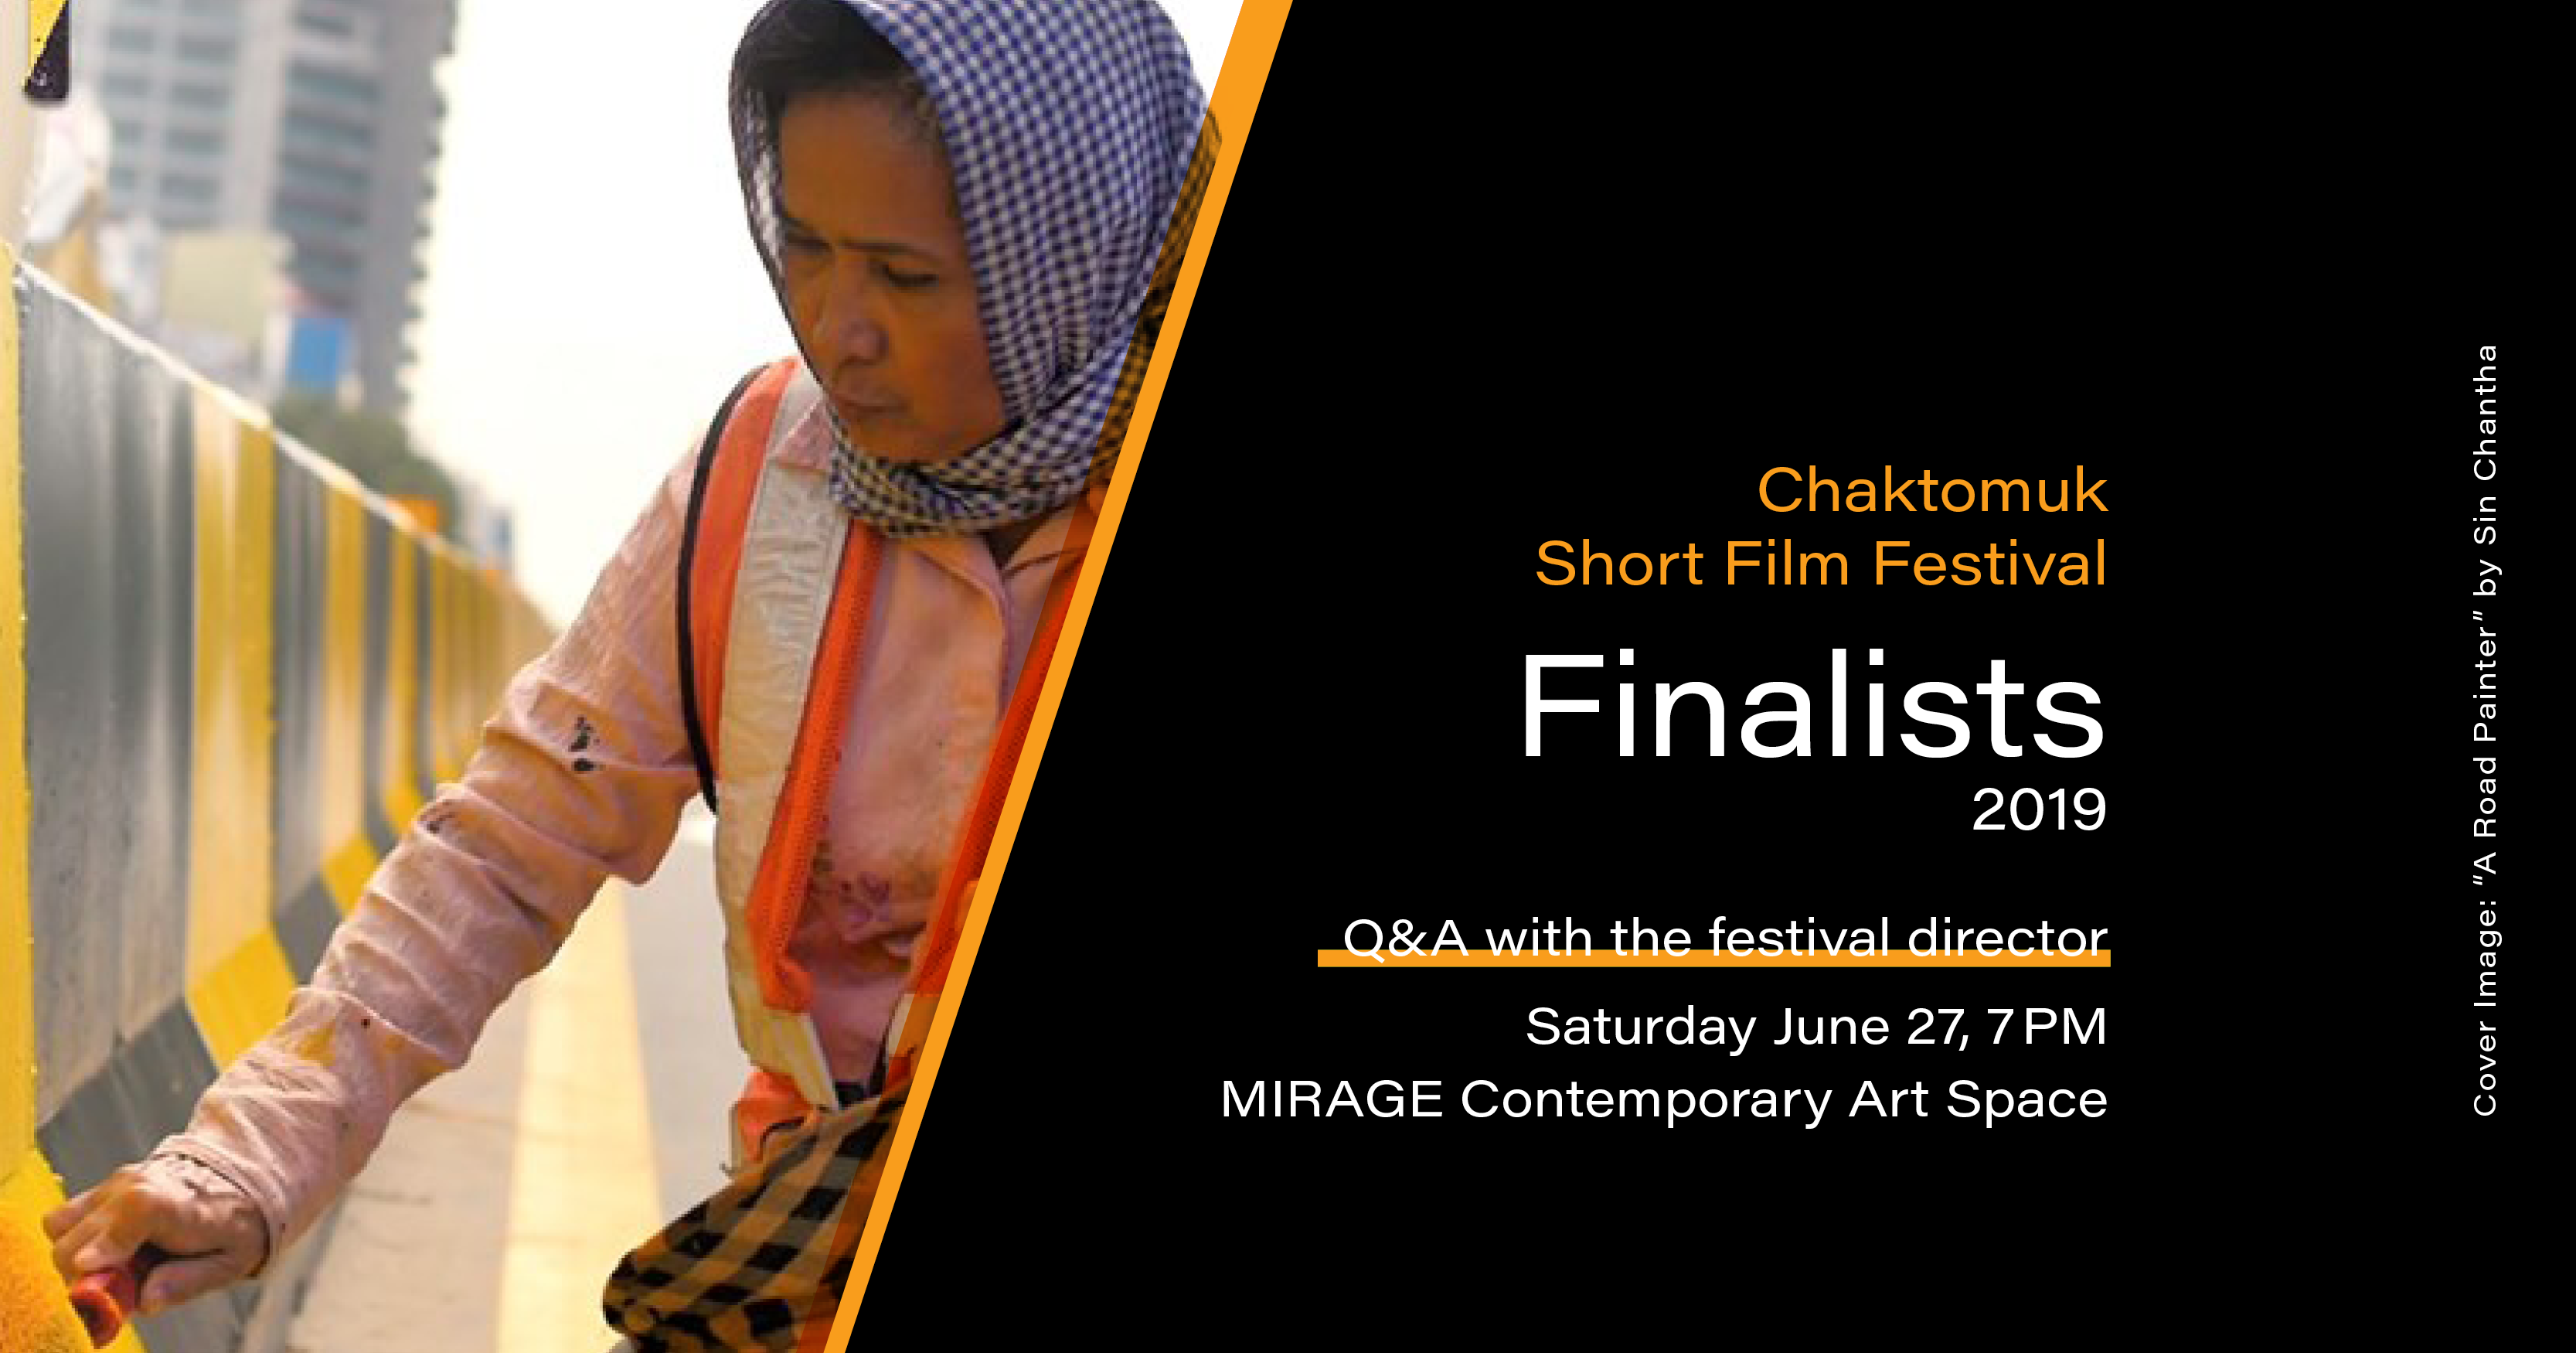 Chaktomuk Short Film Festival at MIRAGE Contemporary Art Space in Siem Reap, Cambodia